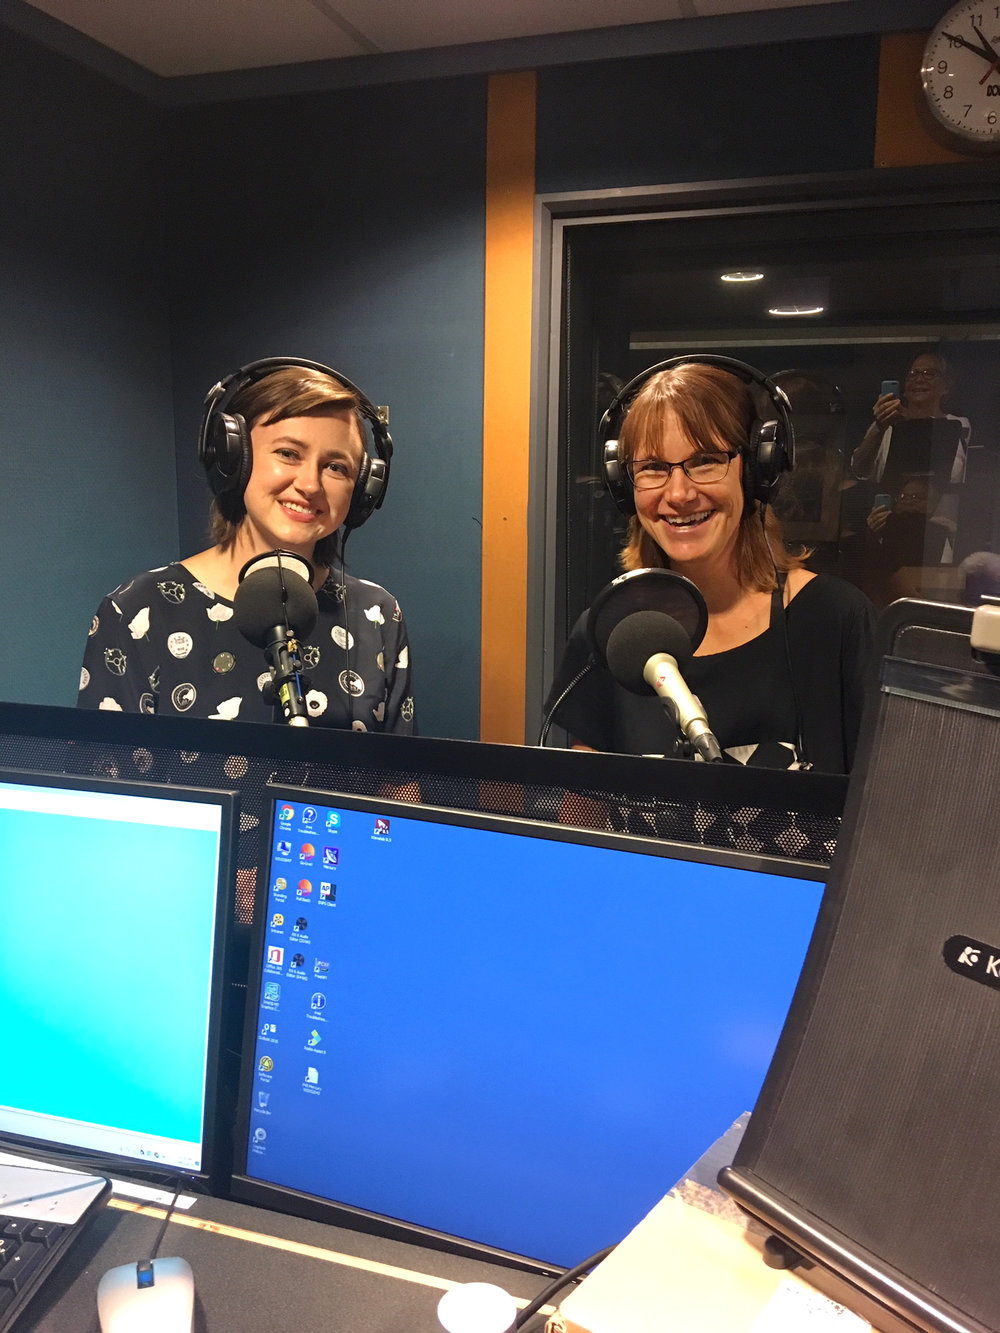 Re-Imagining Calling For Women in the Christian Framework      ABC Radio National: Soul Search   February, 2019   About:  ADM 2017 Senior Research Fellow Dr Meredith Lake, host of  Soul Search , interviewed Katelyn Beaty, speaker at ADM's 2019 School of Theology, Culture & Public Engagement.